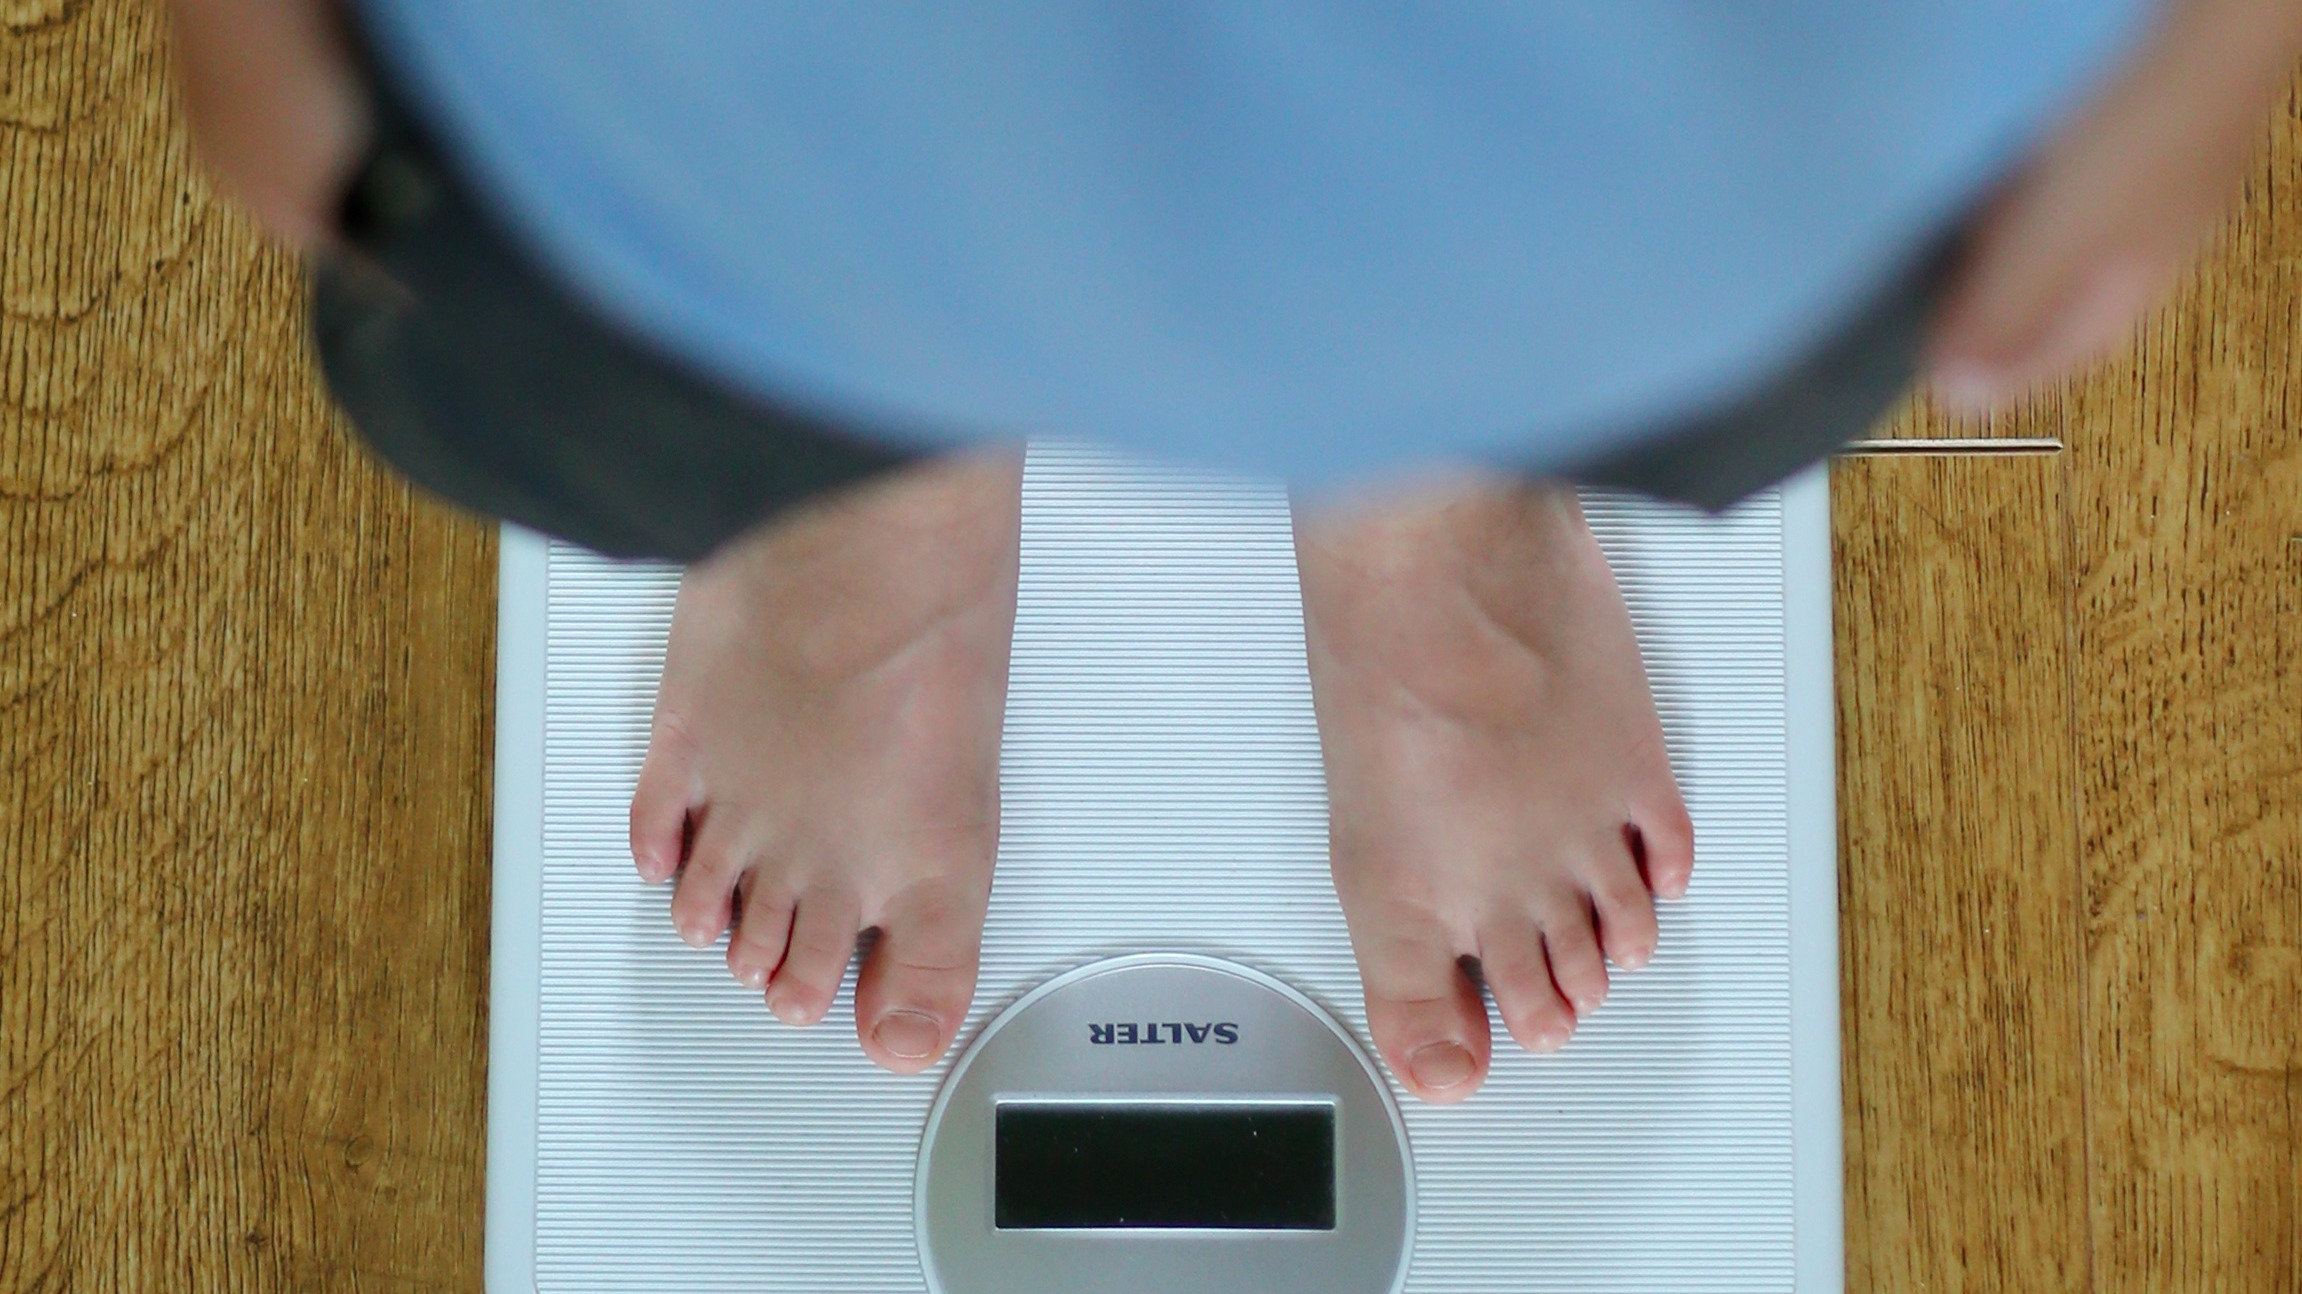 the growing concern of obesity in children and the link between child obesity and inactivity